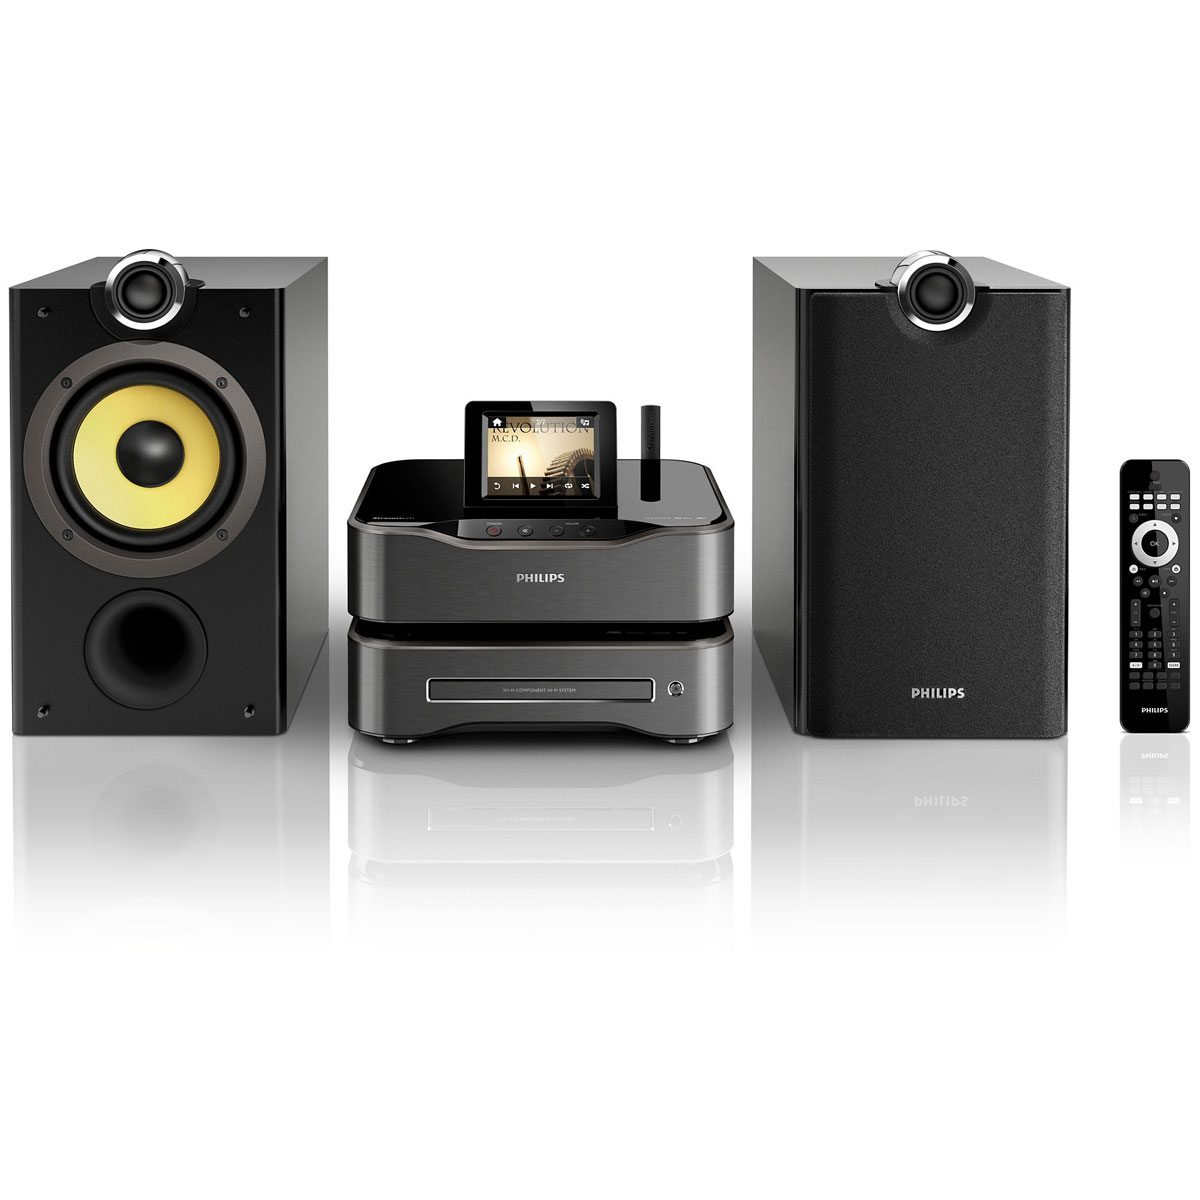 philips mci8080 cha ne hifi philips sur ldlc. Black Bedroom Furniture Sets. Home Design Ideas